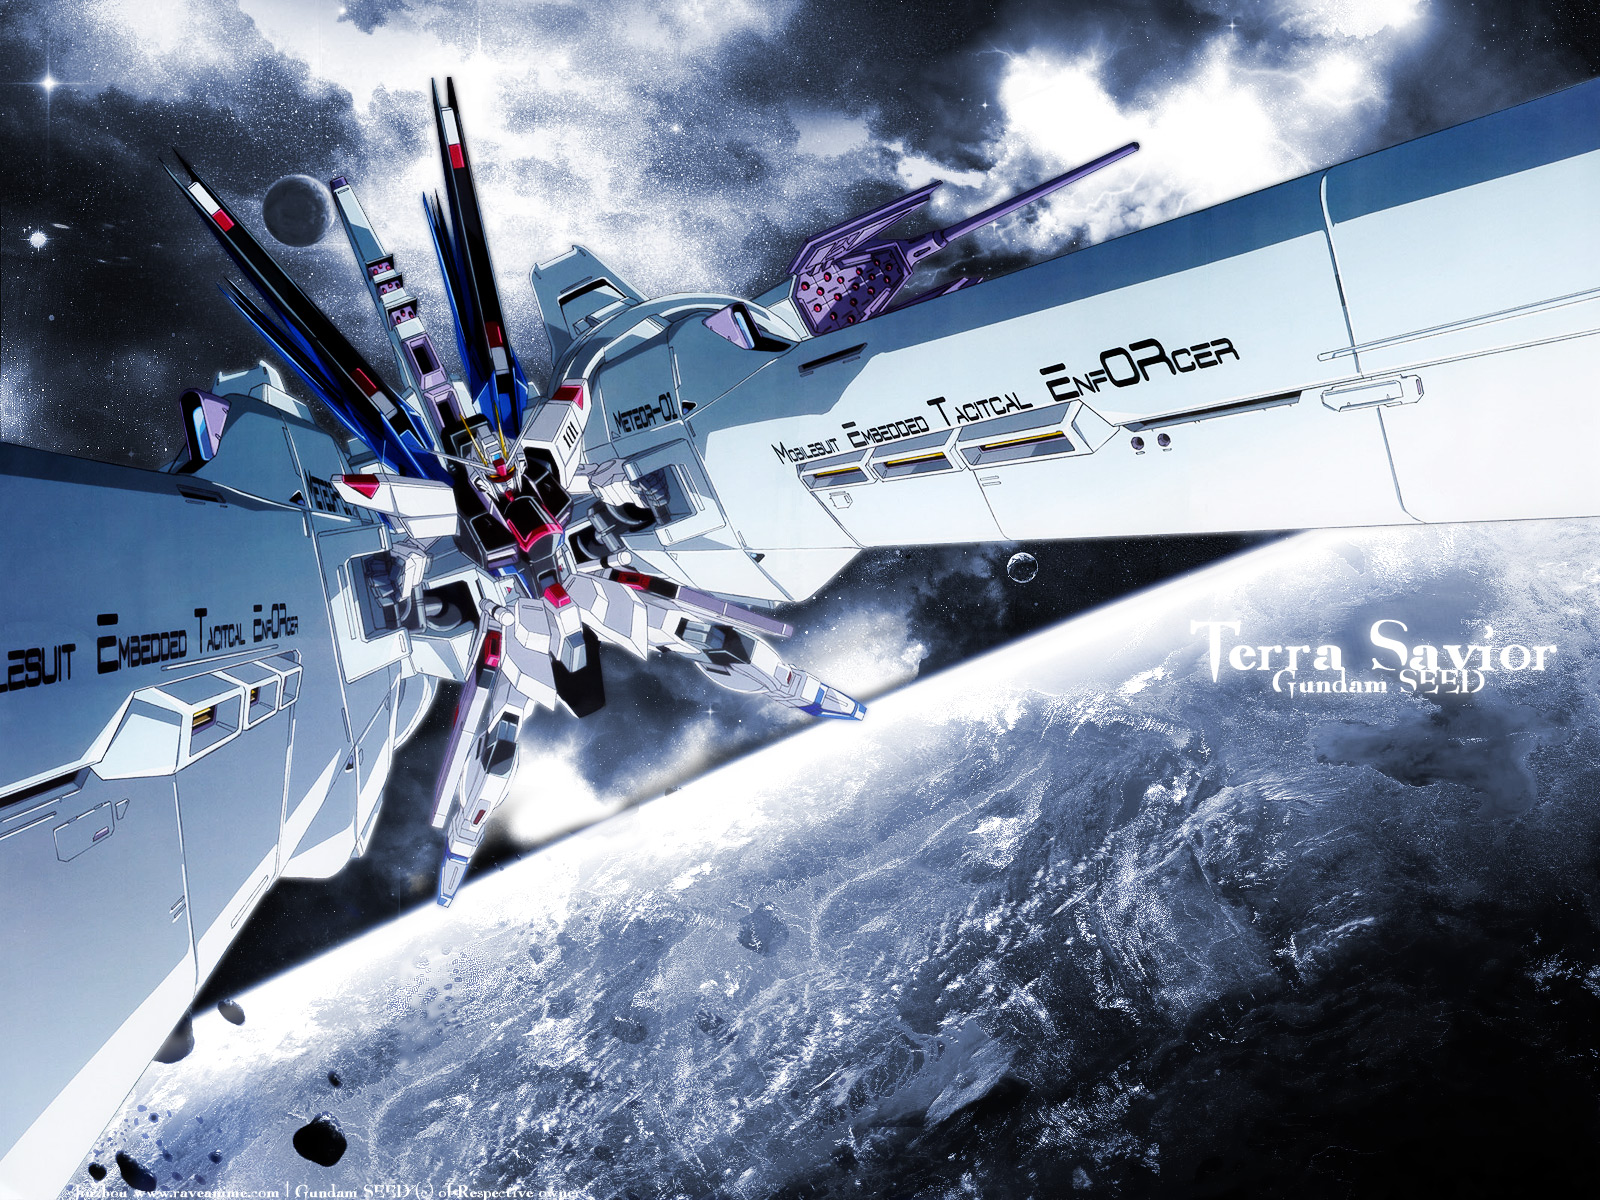 Freedom with meteor 1600x1200 anime wallpapers anime - Anime 1600x1200 ...